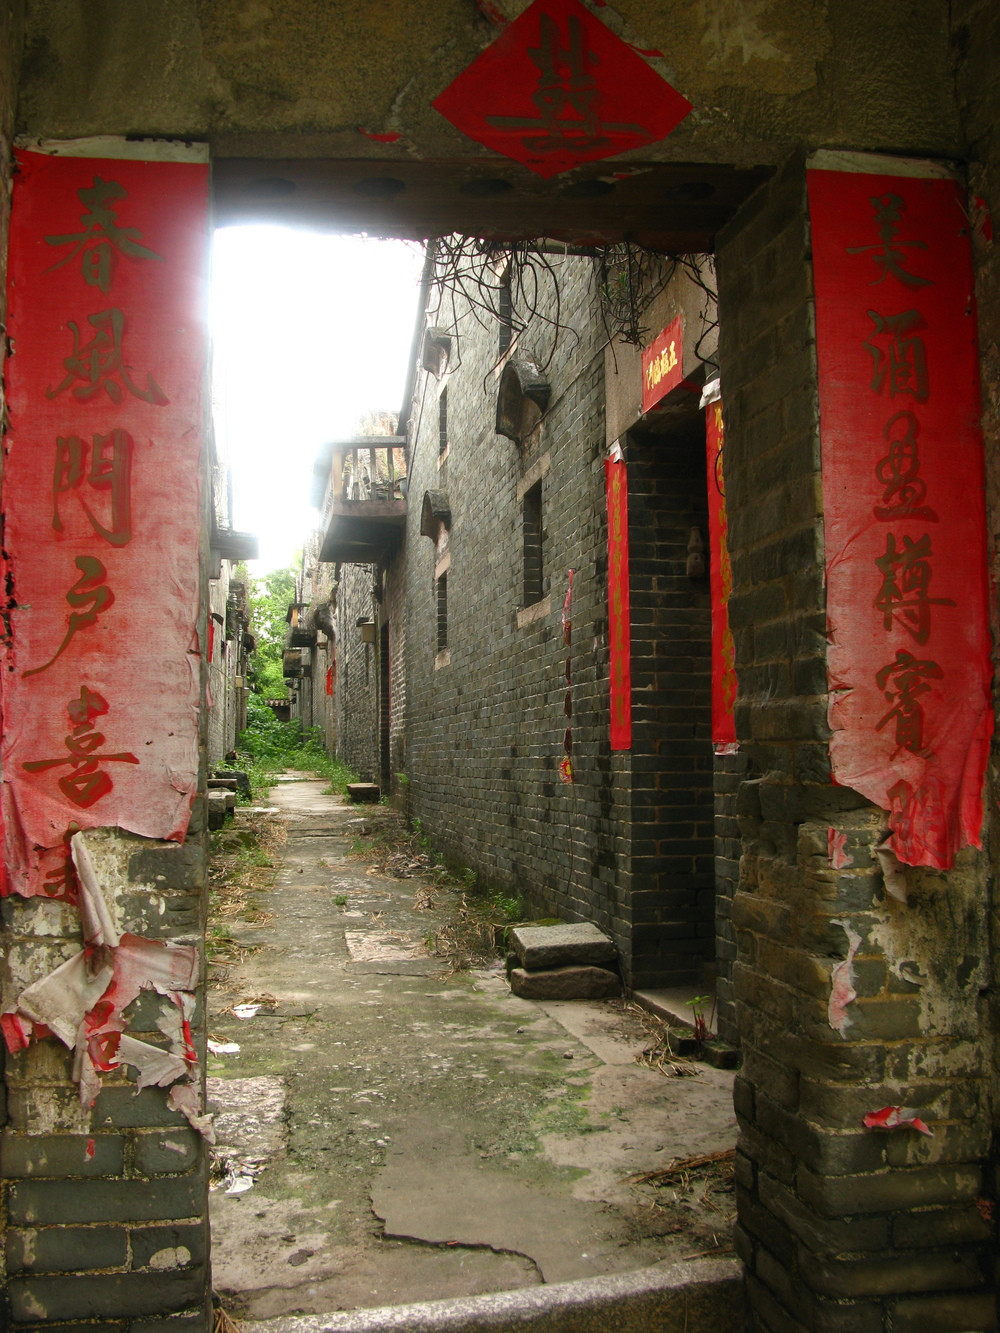 Paternal village alley